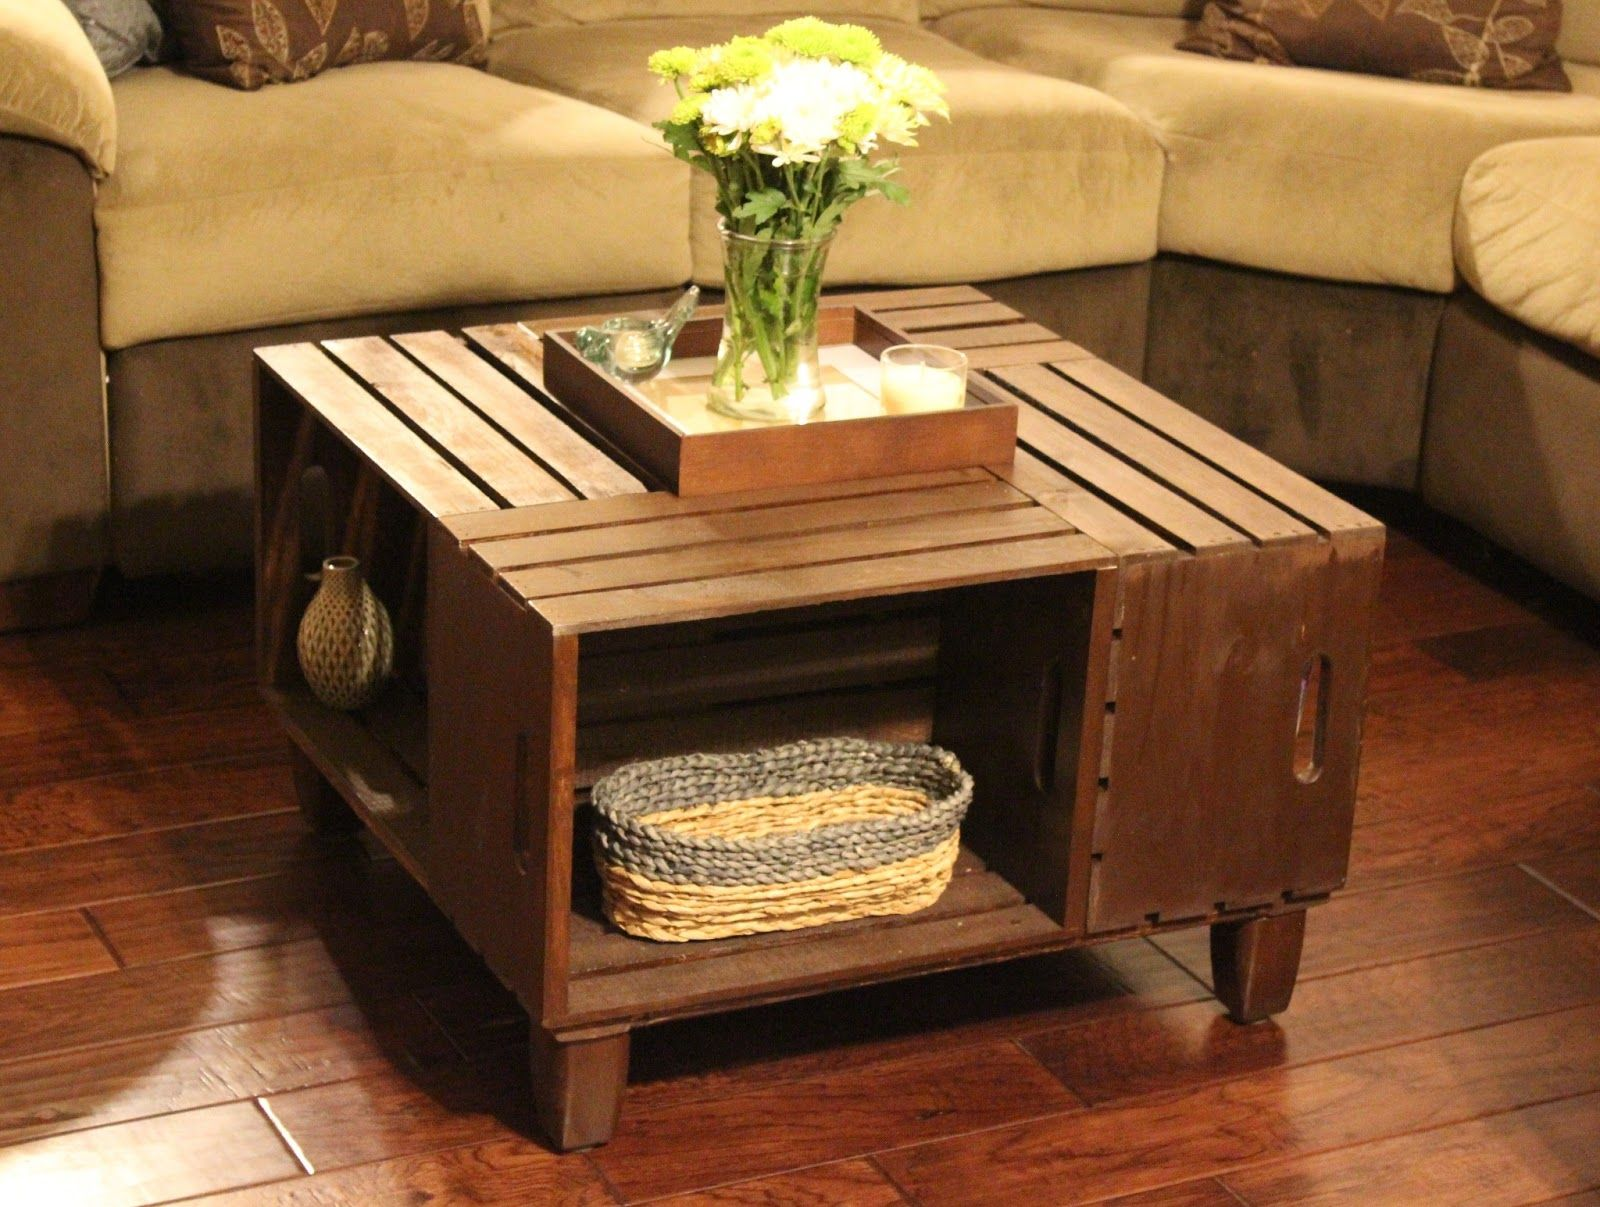 Landing on love diy crate coffee table furniture landing on love diy crate coffee table geotapseo Images